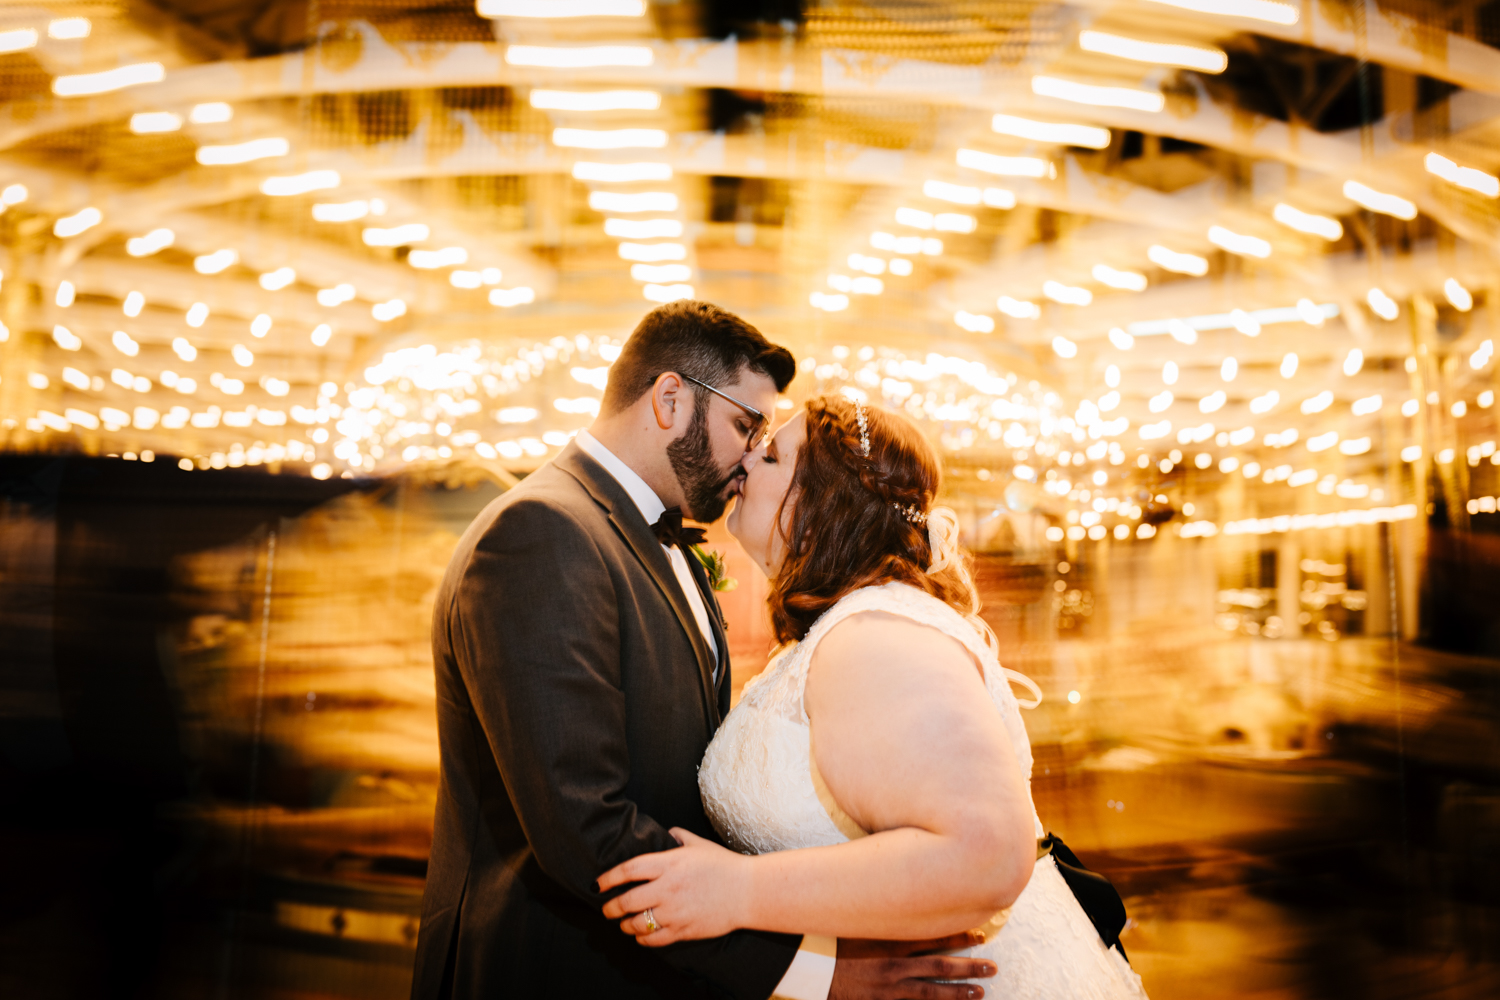 Bride and groom kissing in long exposure photo of carousel